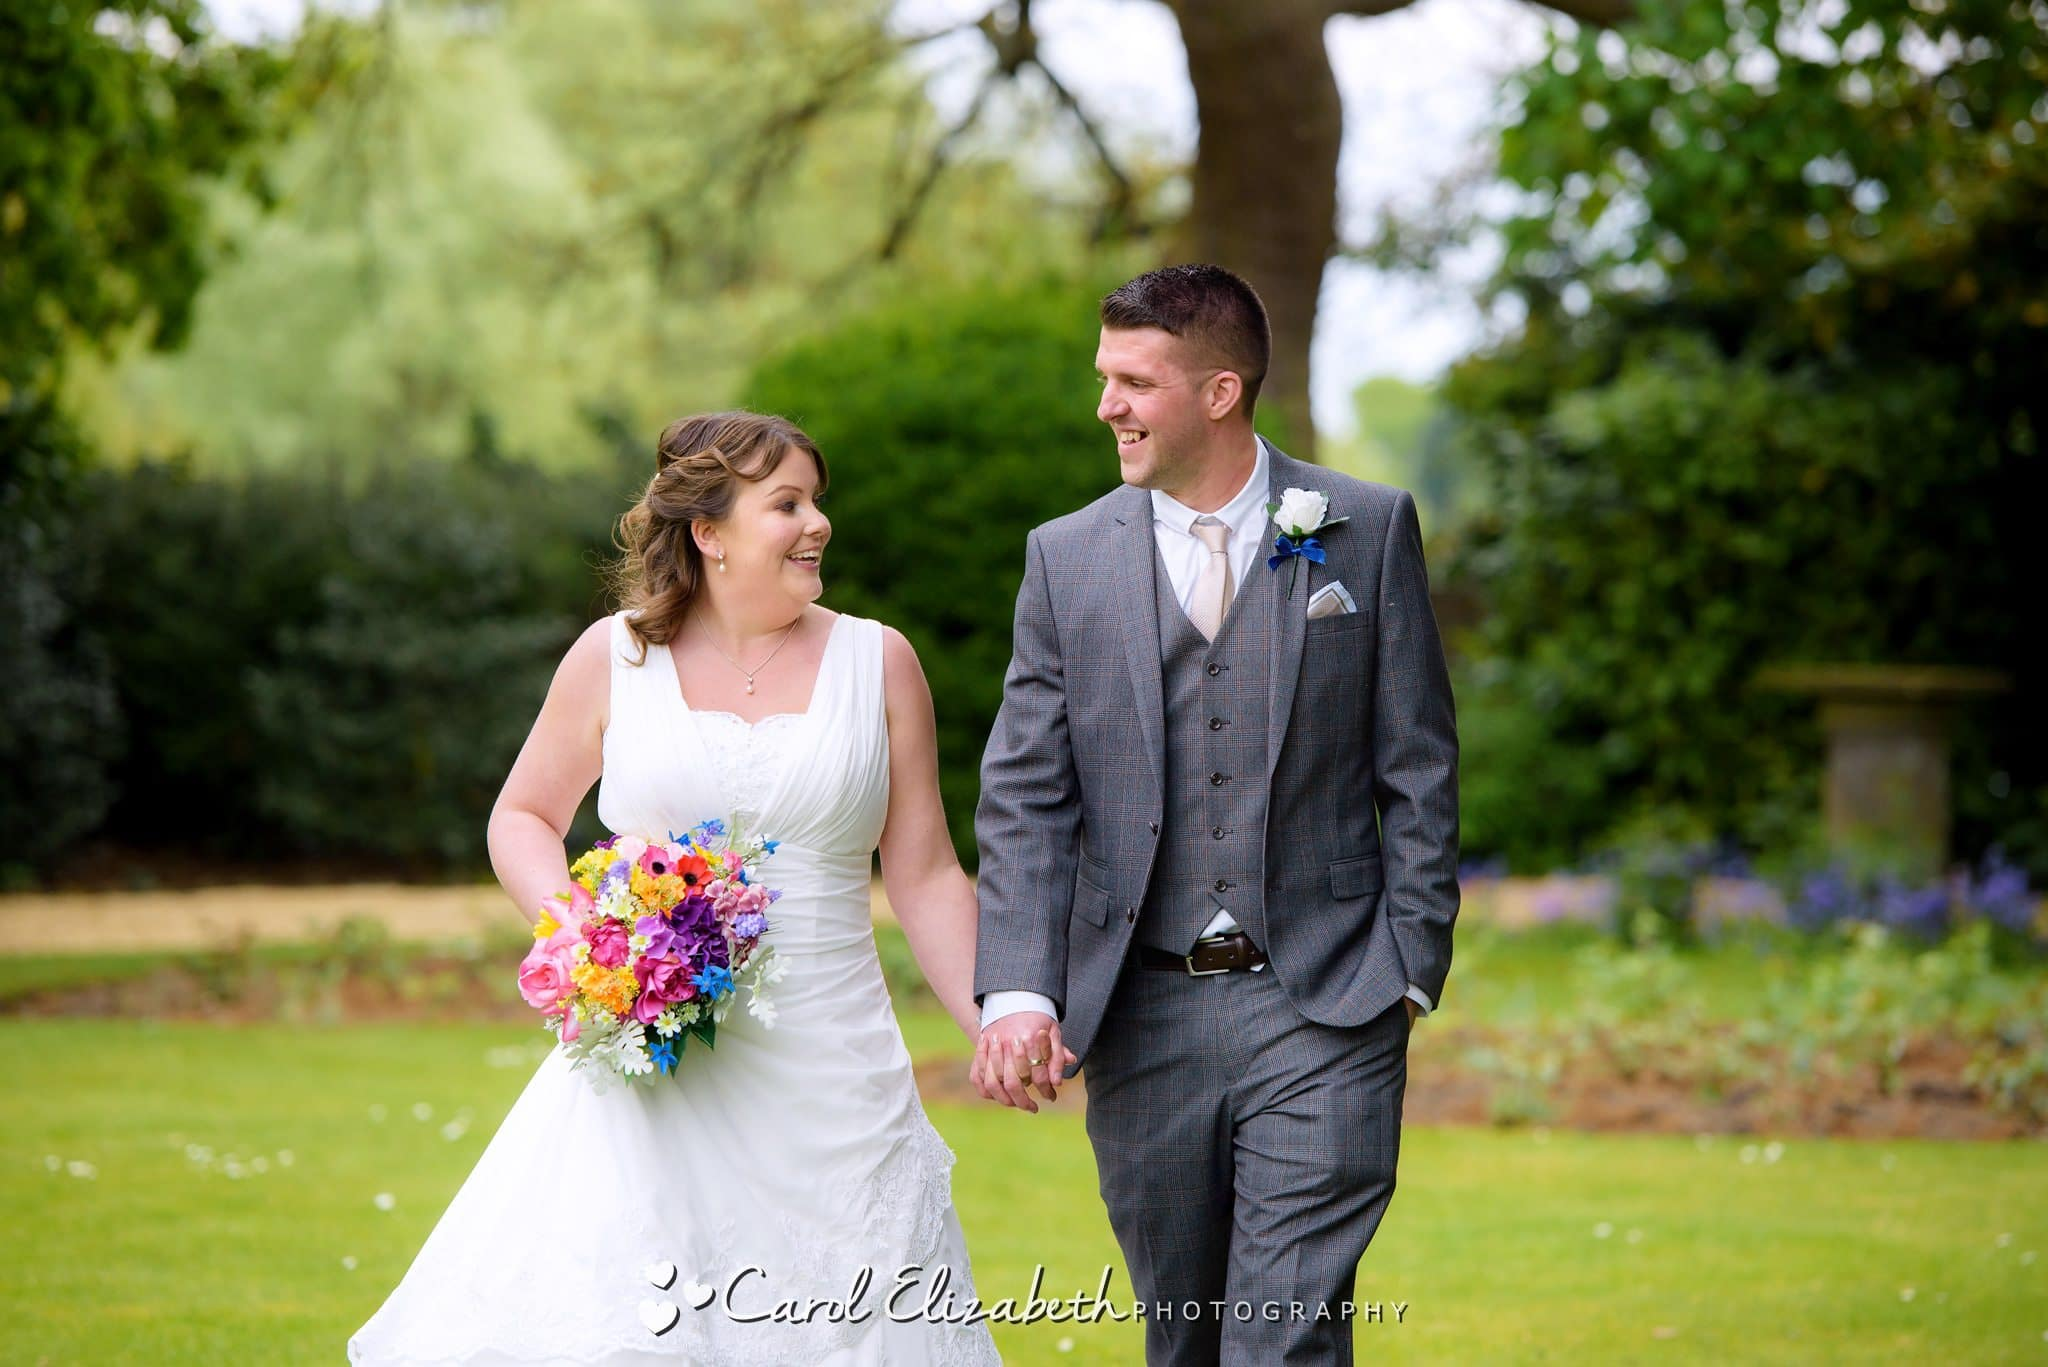 Wedding venues in Abingdon - Coseners House